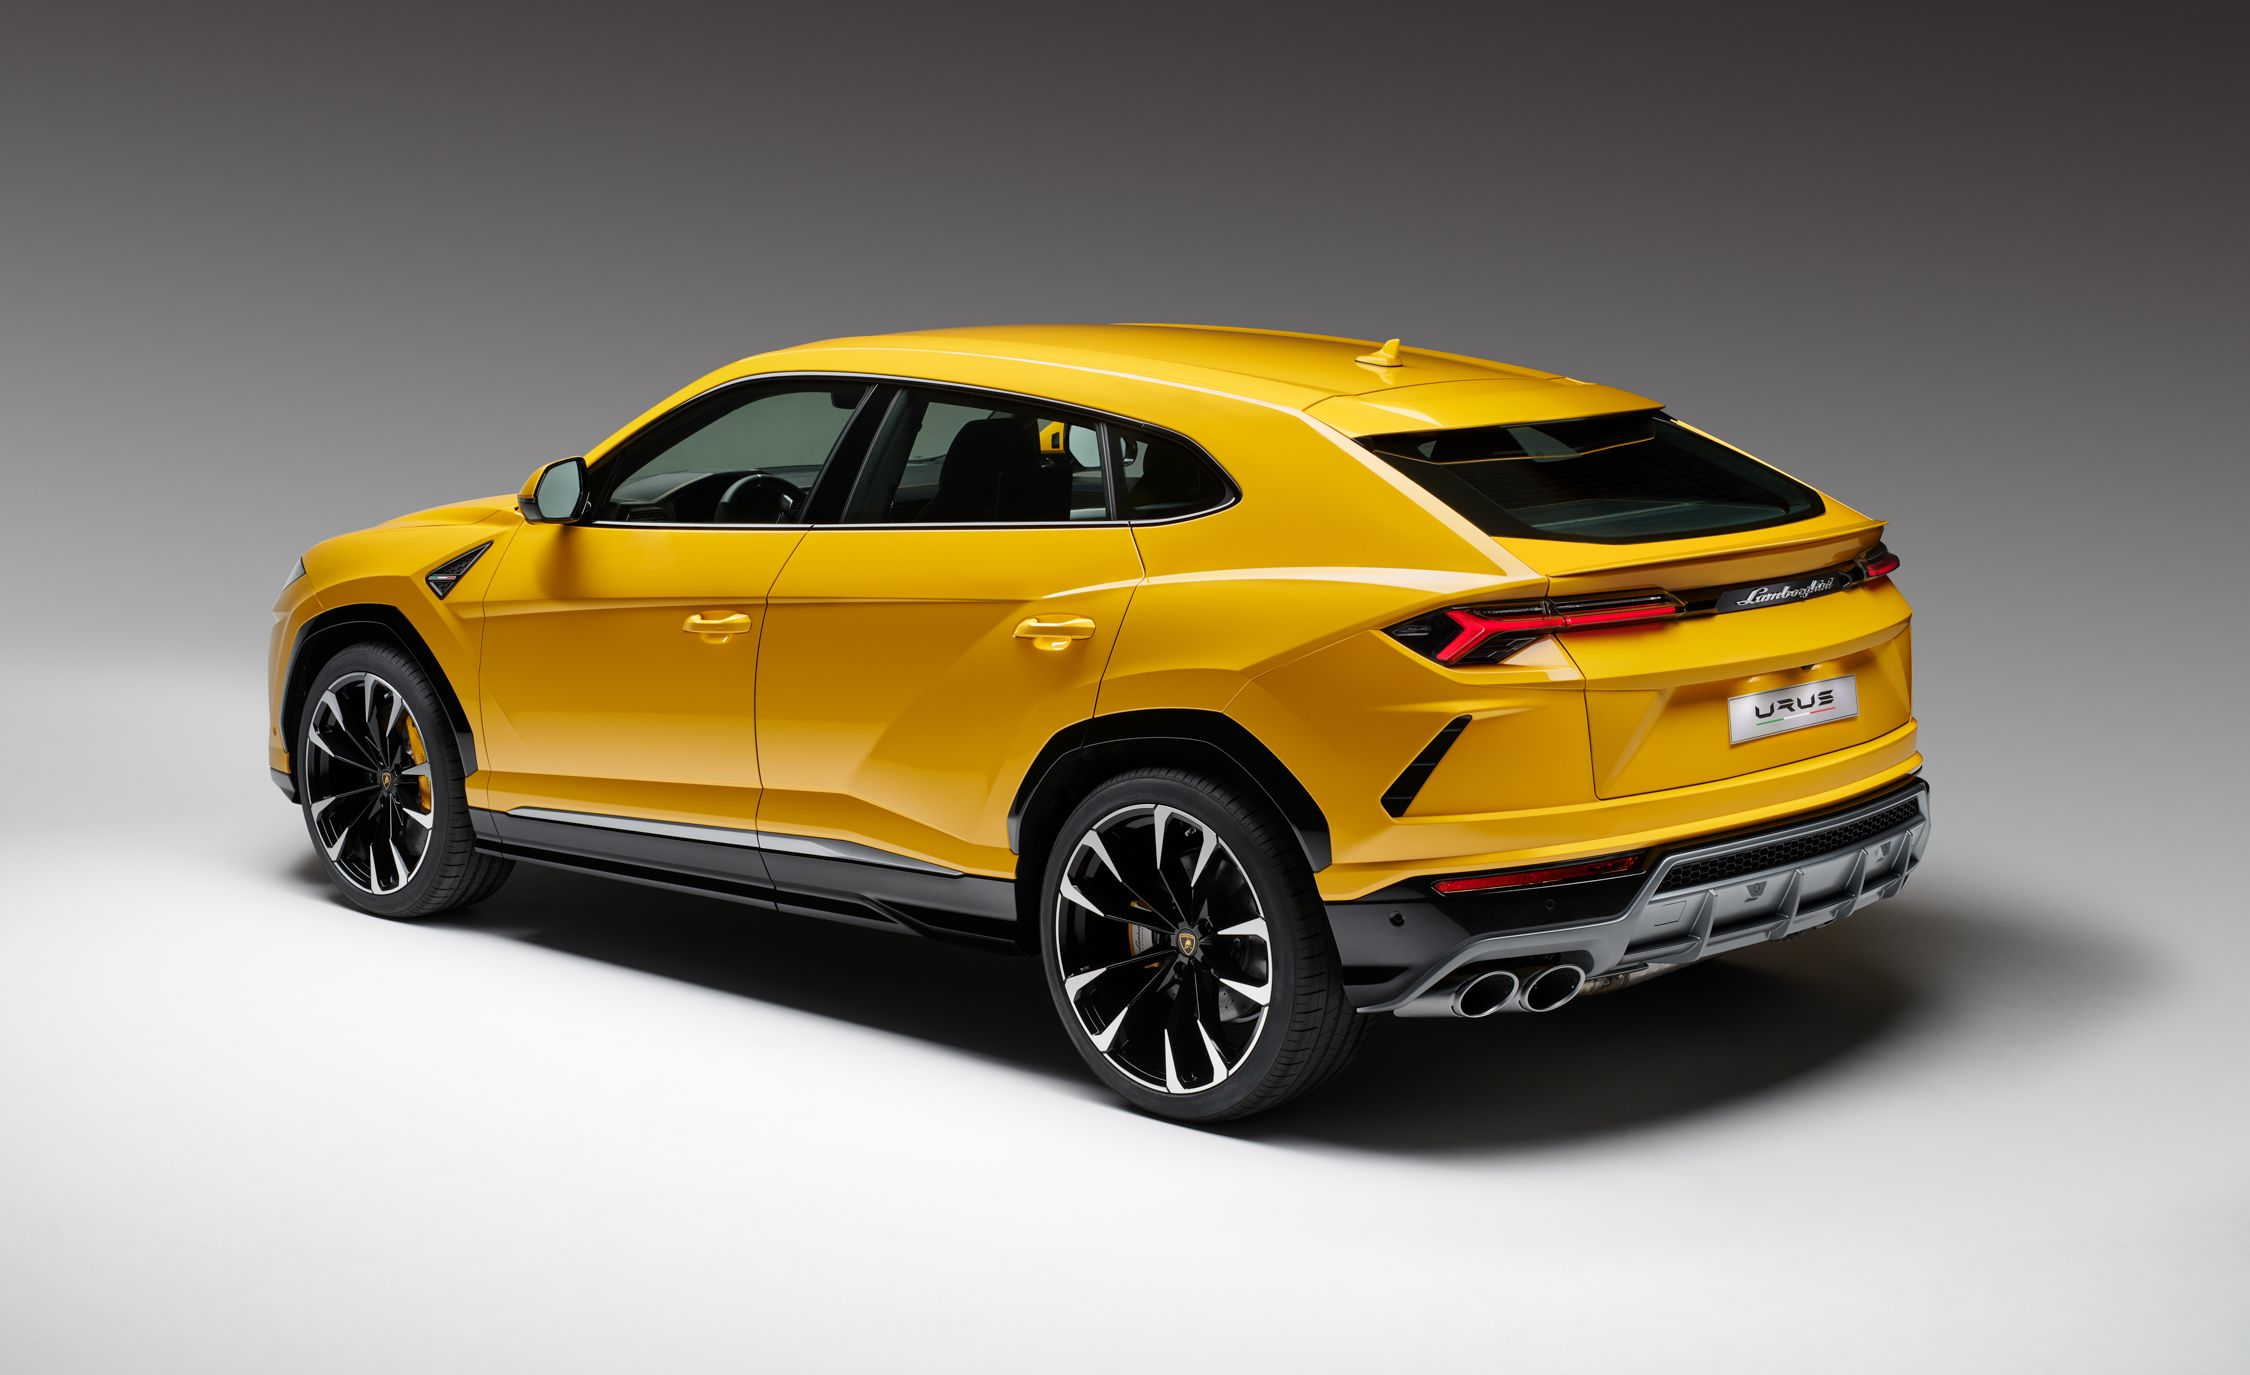 lamborghini urus reviews | lamborghini urus price, photos, and